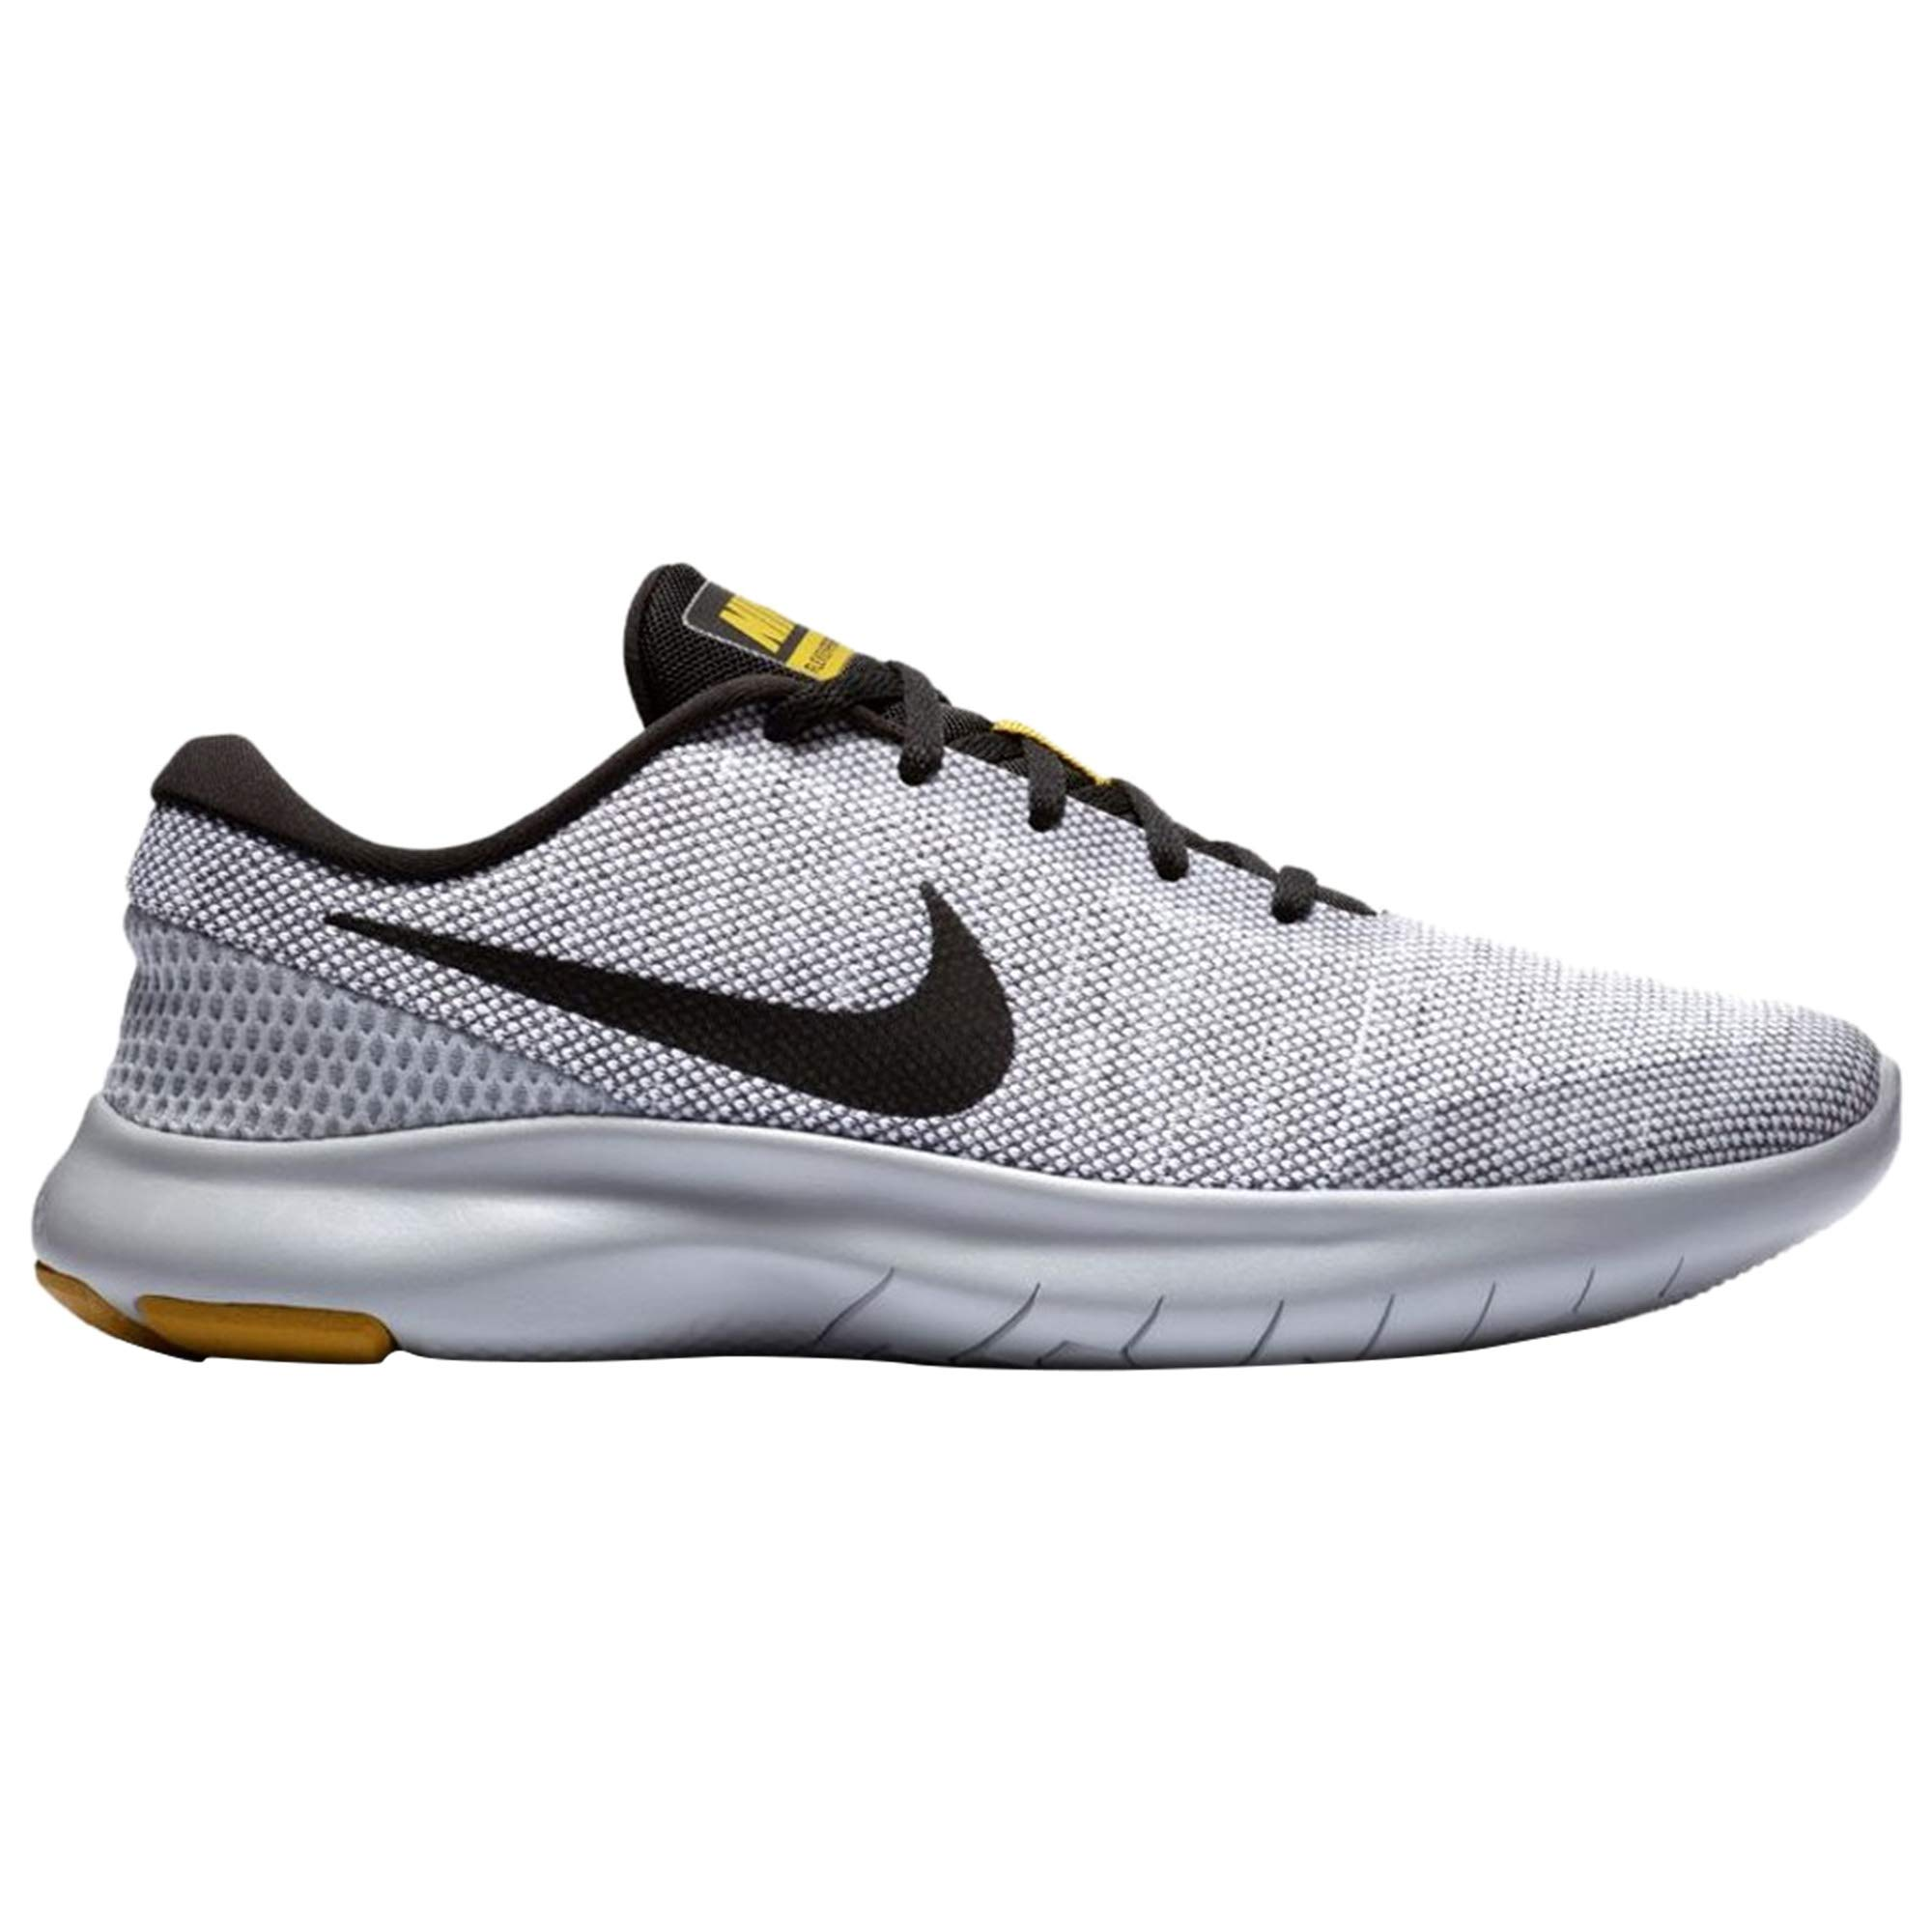 new product fd6be adf98 Galleon - NIKE Men s Flex Experience RN 7 Running Shoe White Black Wolf Grey  Size 9 M US